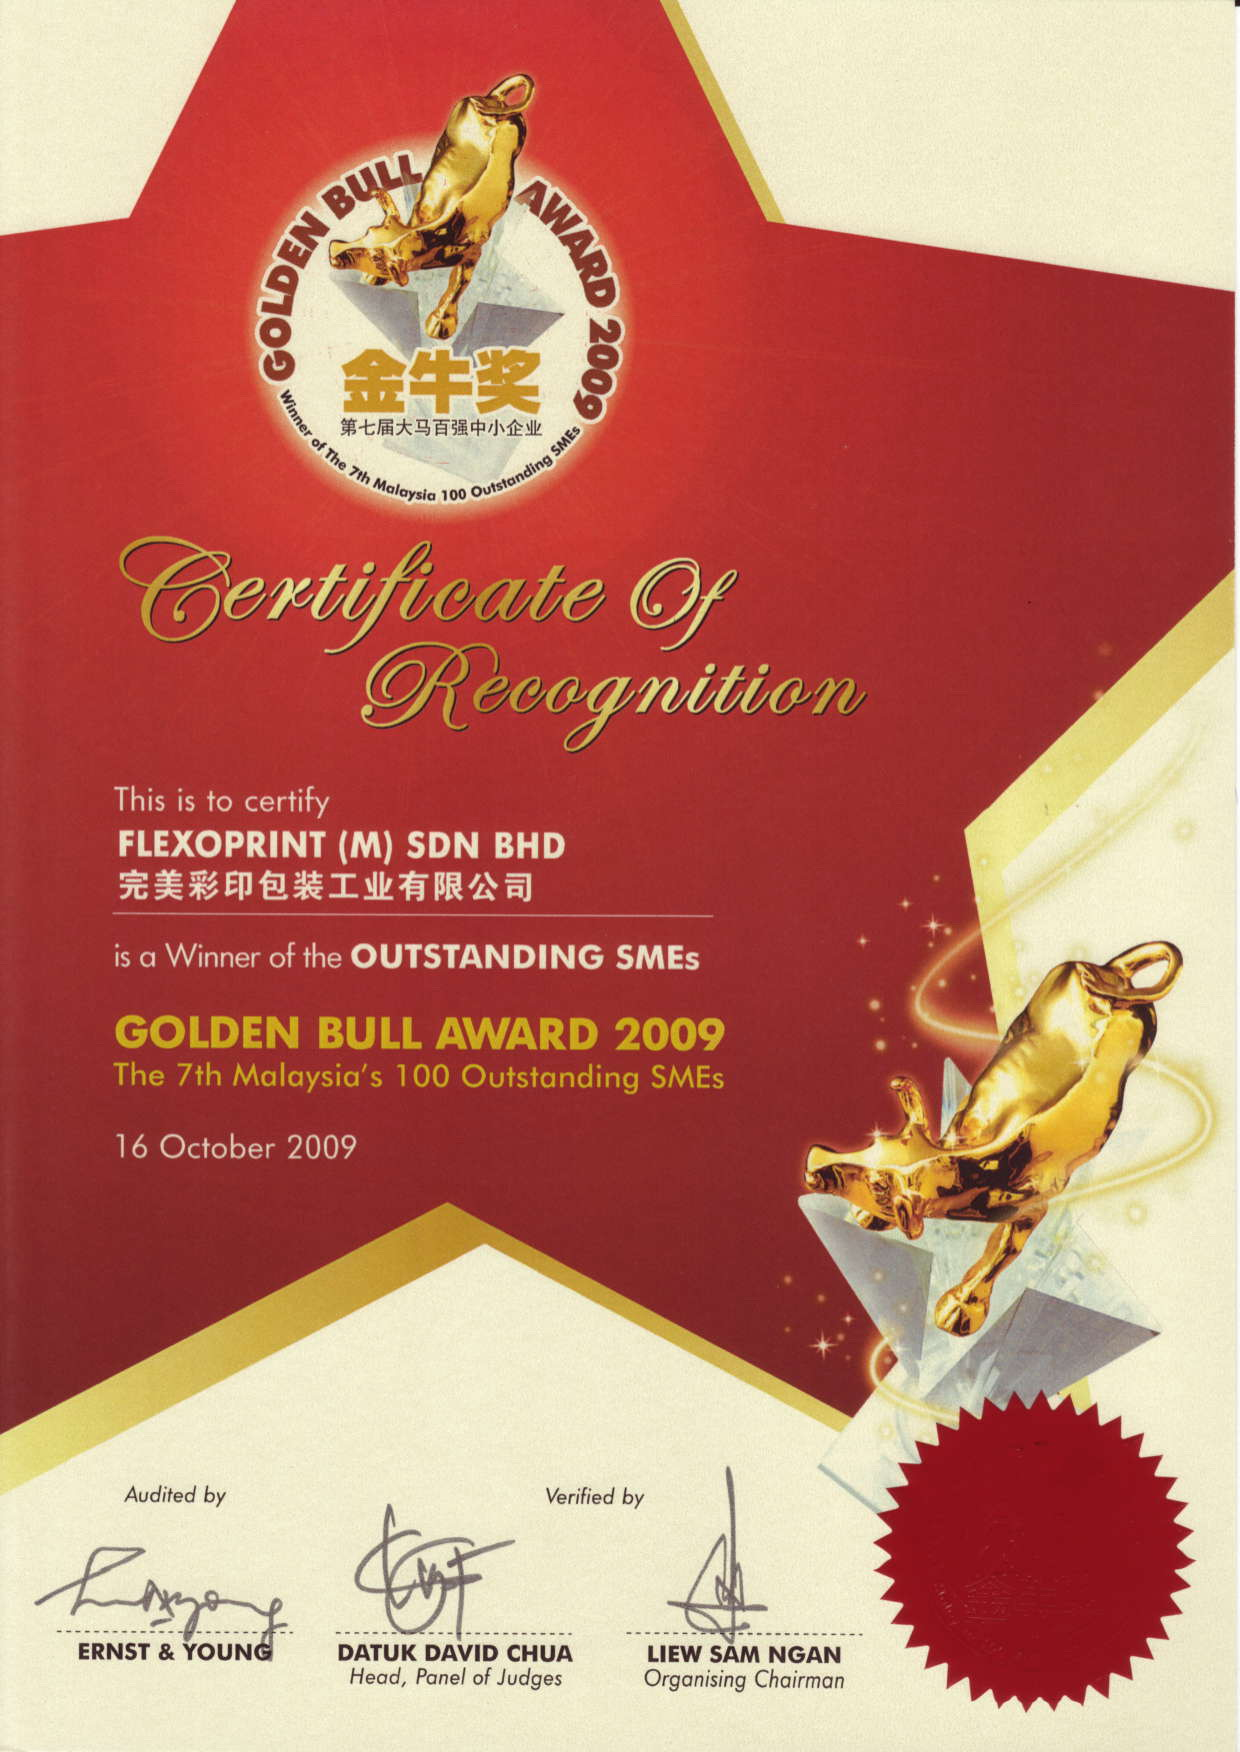 Golden Bull Award 2009